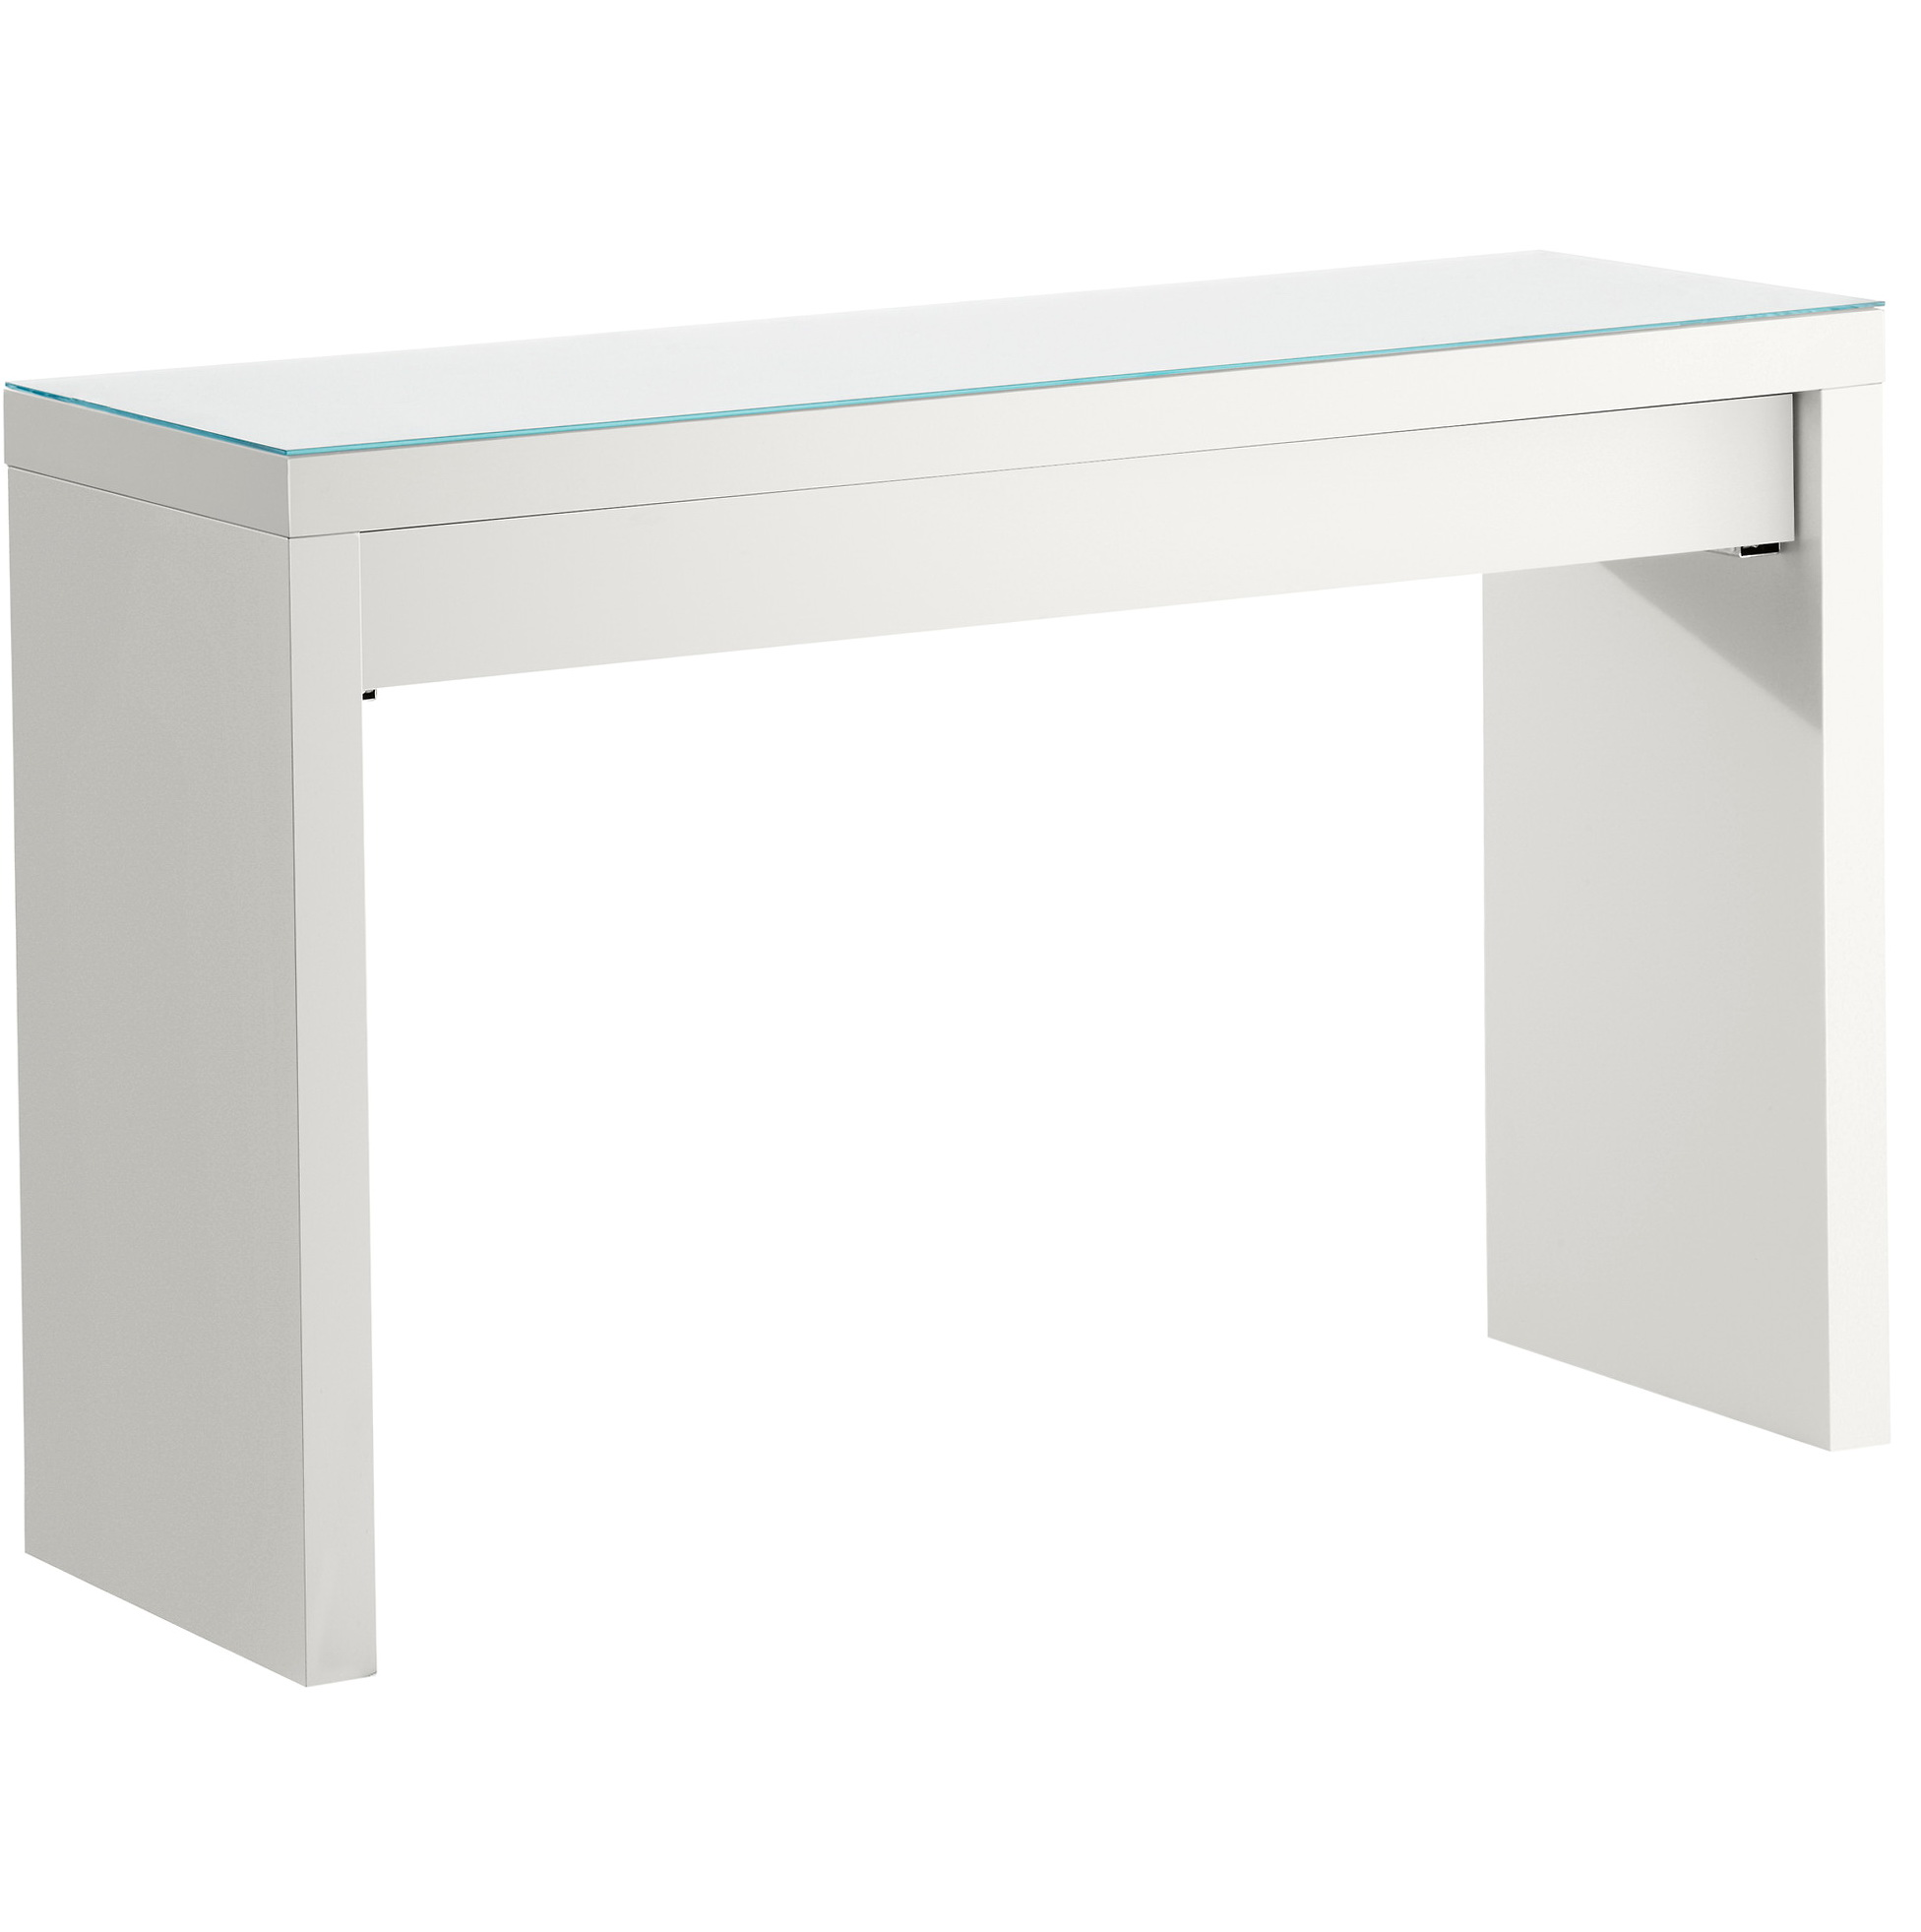 white console table ikea home design ideas. Black Bedroom Furniture Sets. Home Design Ideas